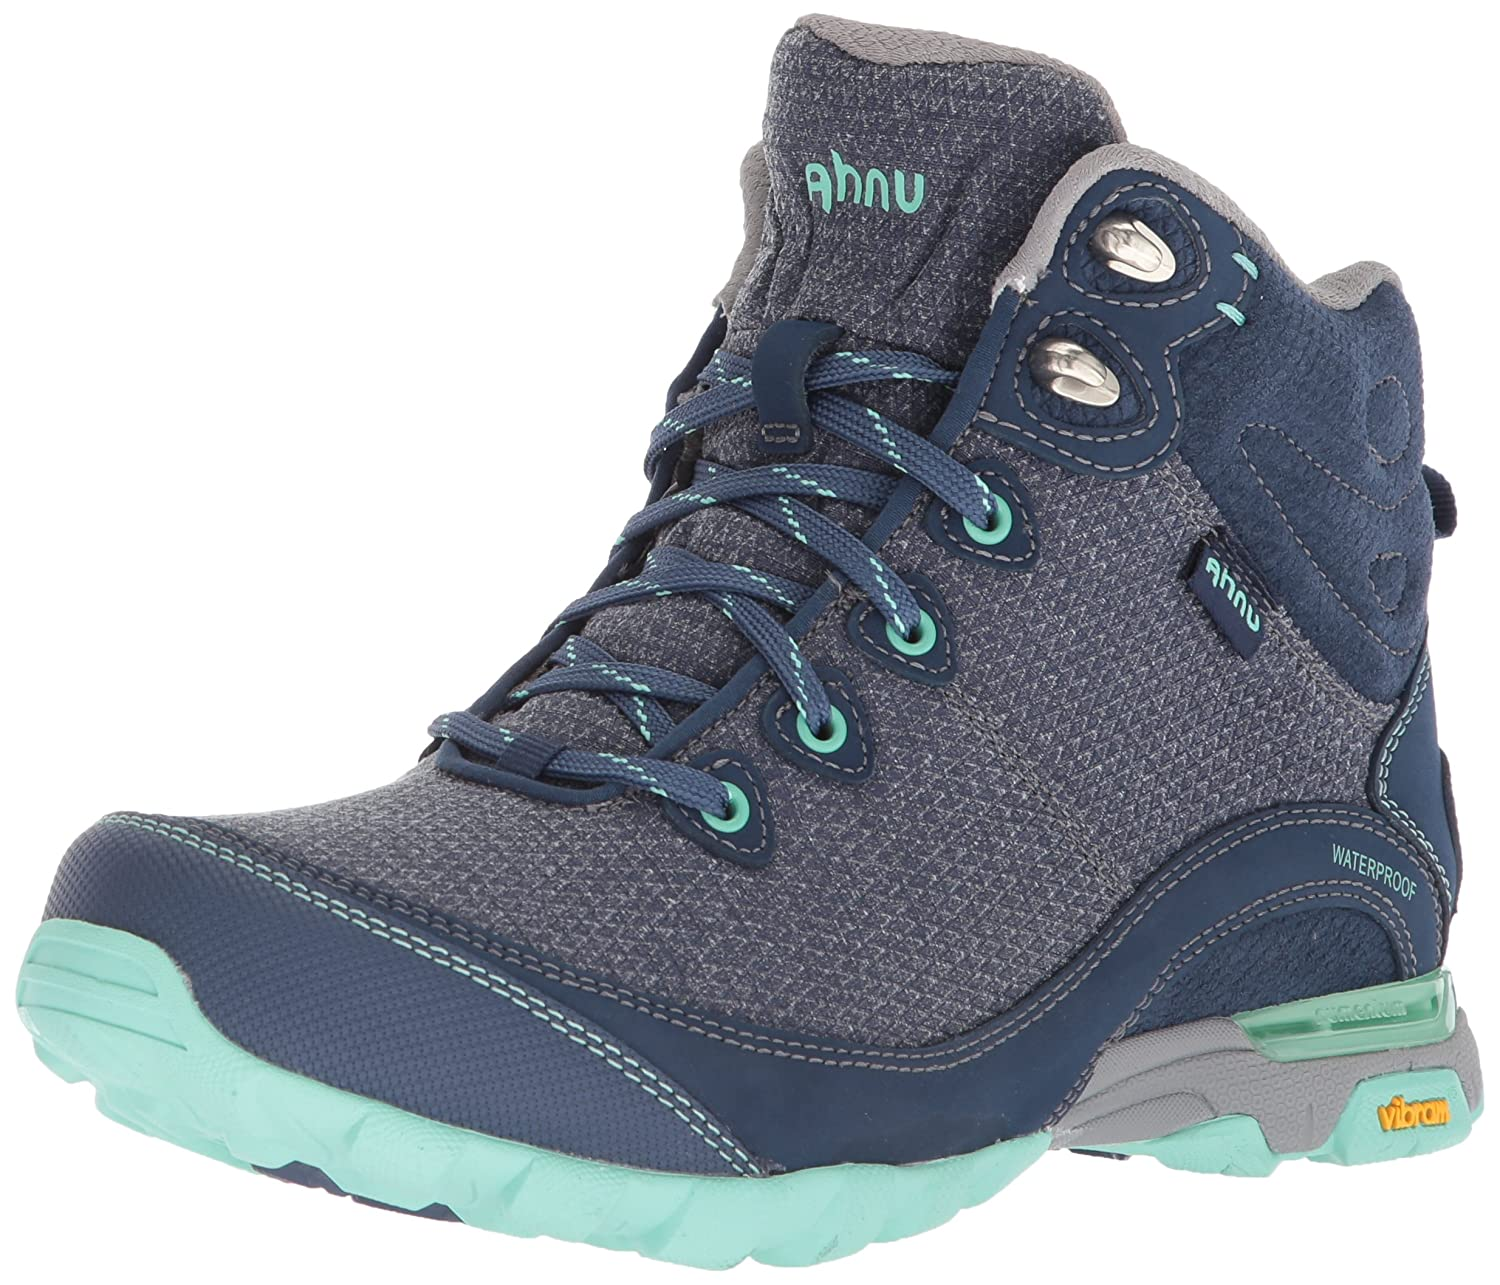 Ahnu Women's W Sugarpine II Waterproof Hiking Boot B071WMHX7C 11 B(M) US|Insignia Blue